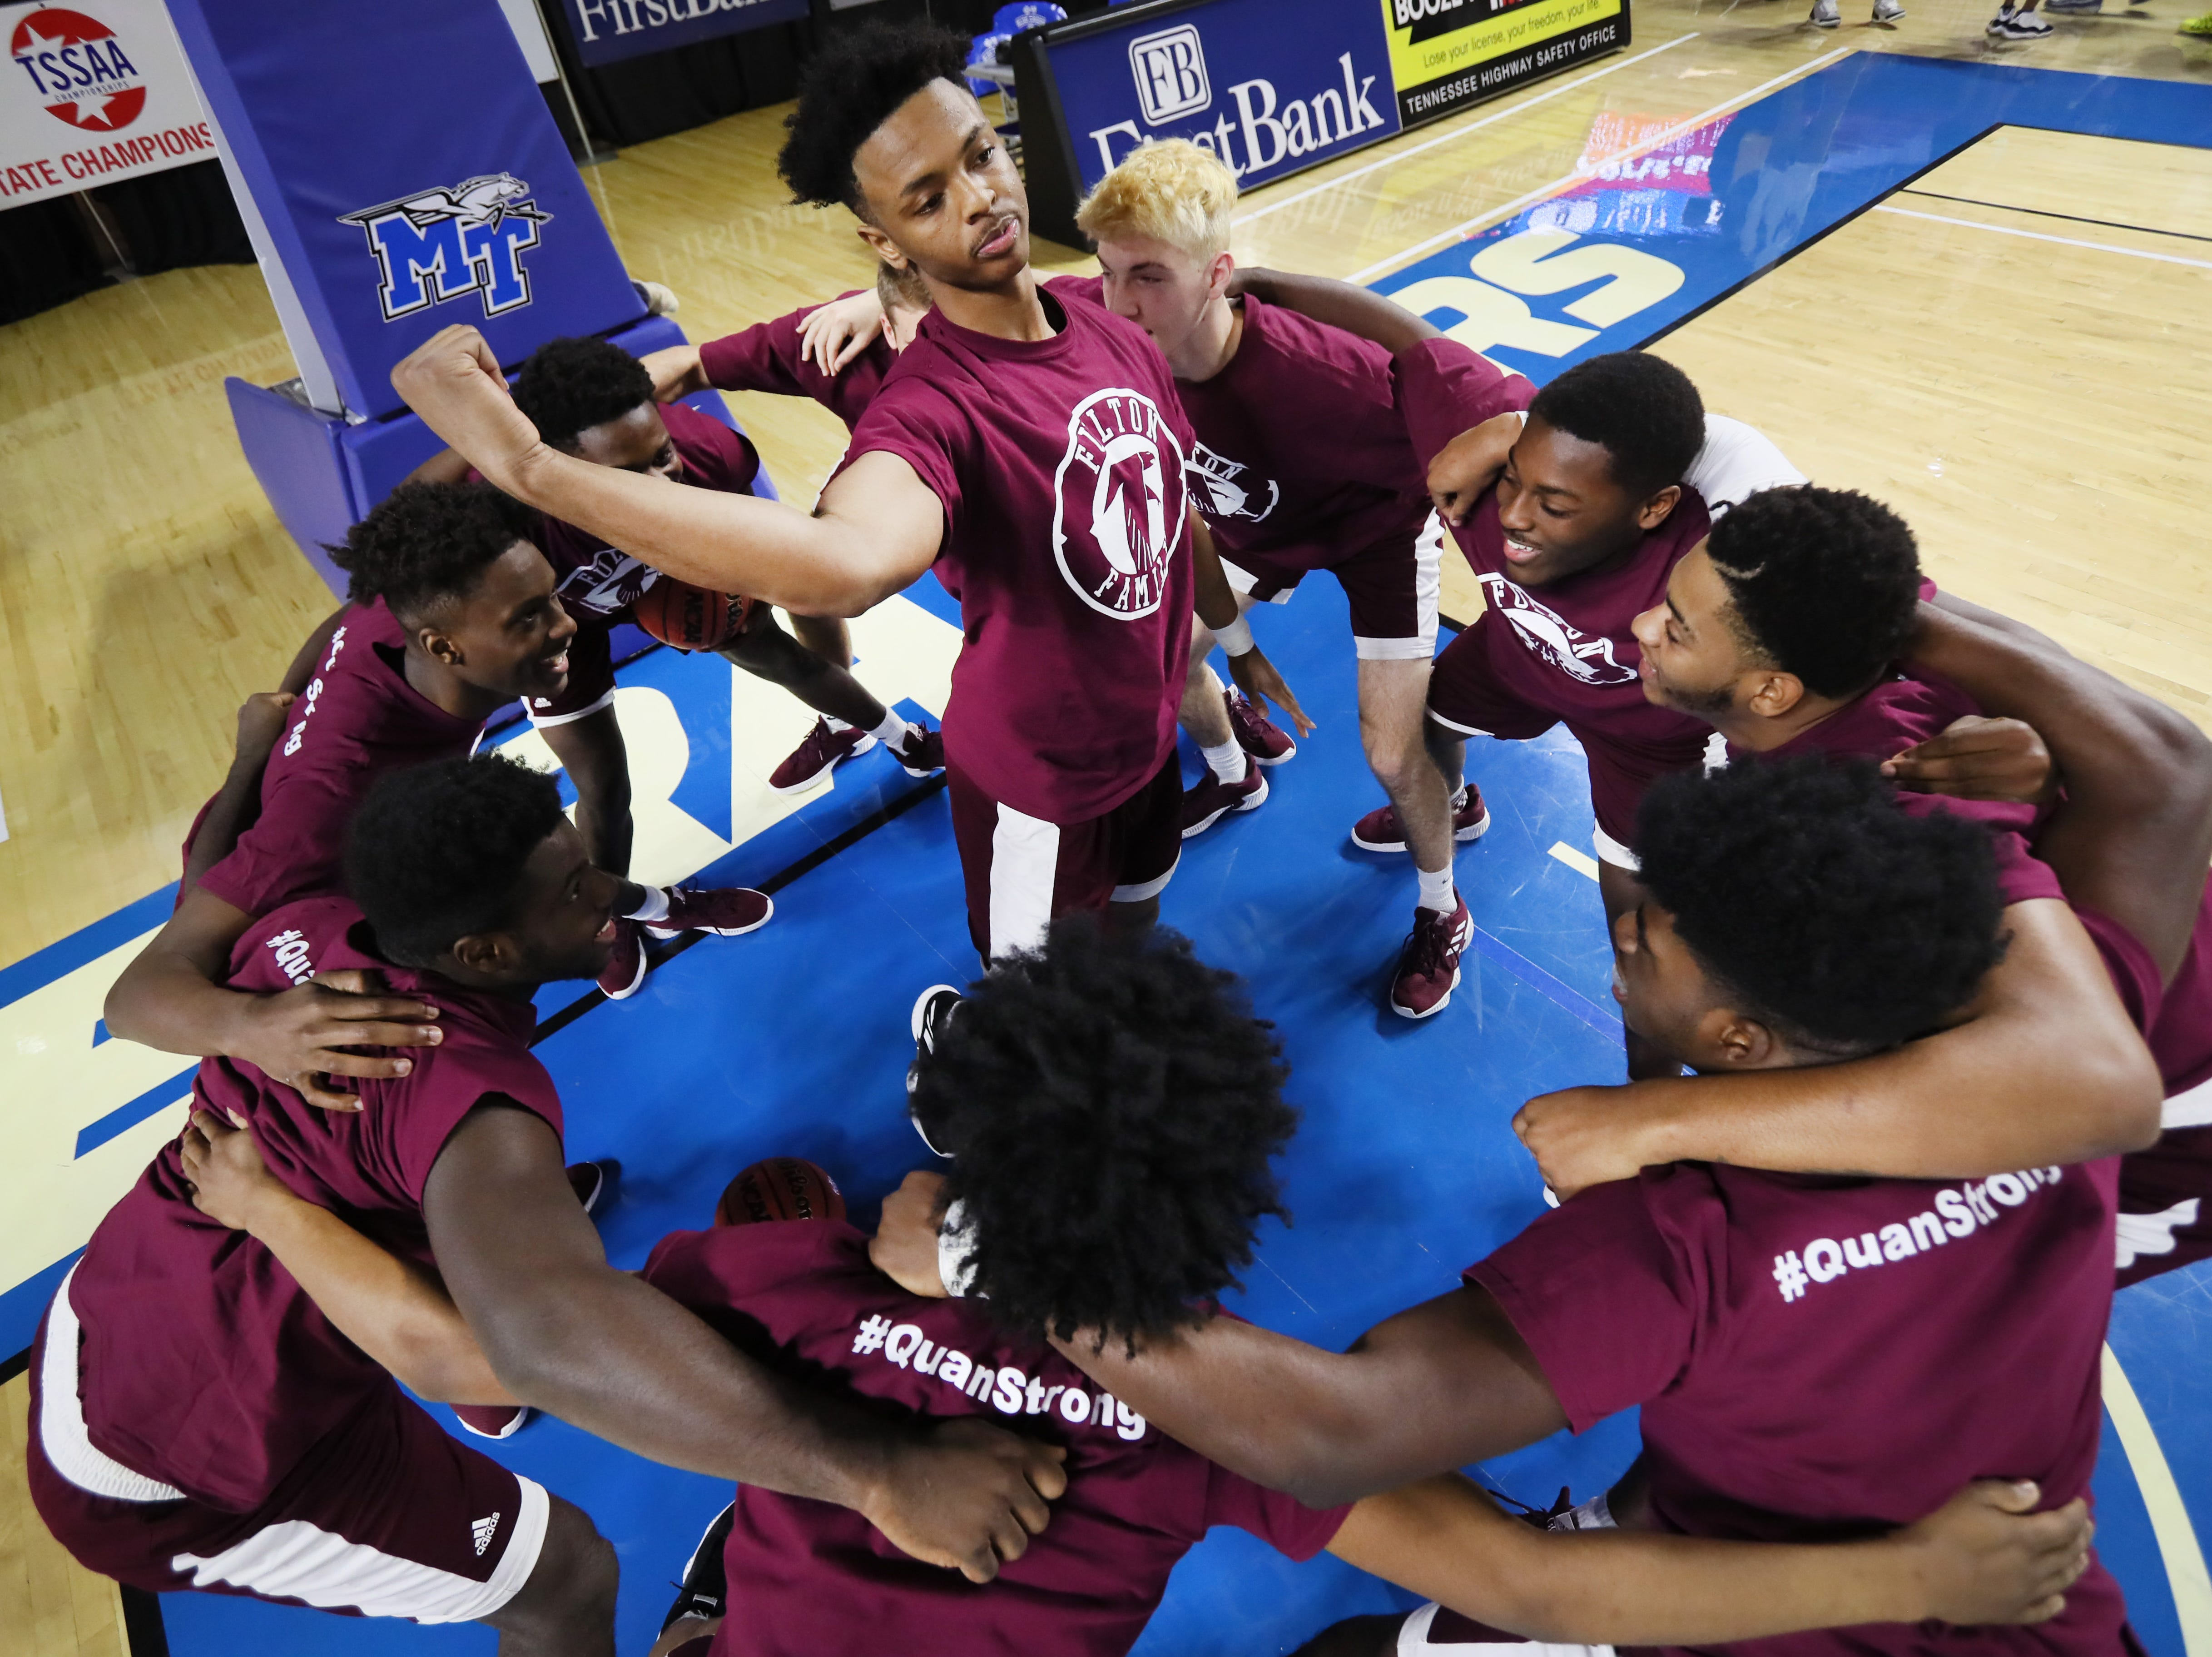 Fulton players huddle up before they take on Mitchell during their TSSAA Division I basketball state tournament in Murfreesboro on Wednesday, March 13, 2019.